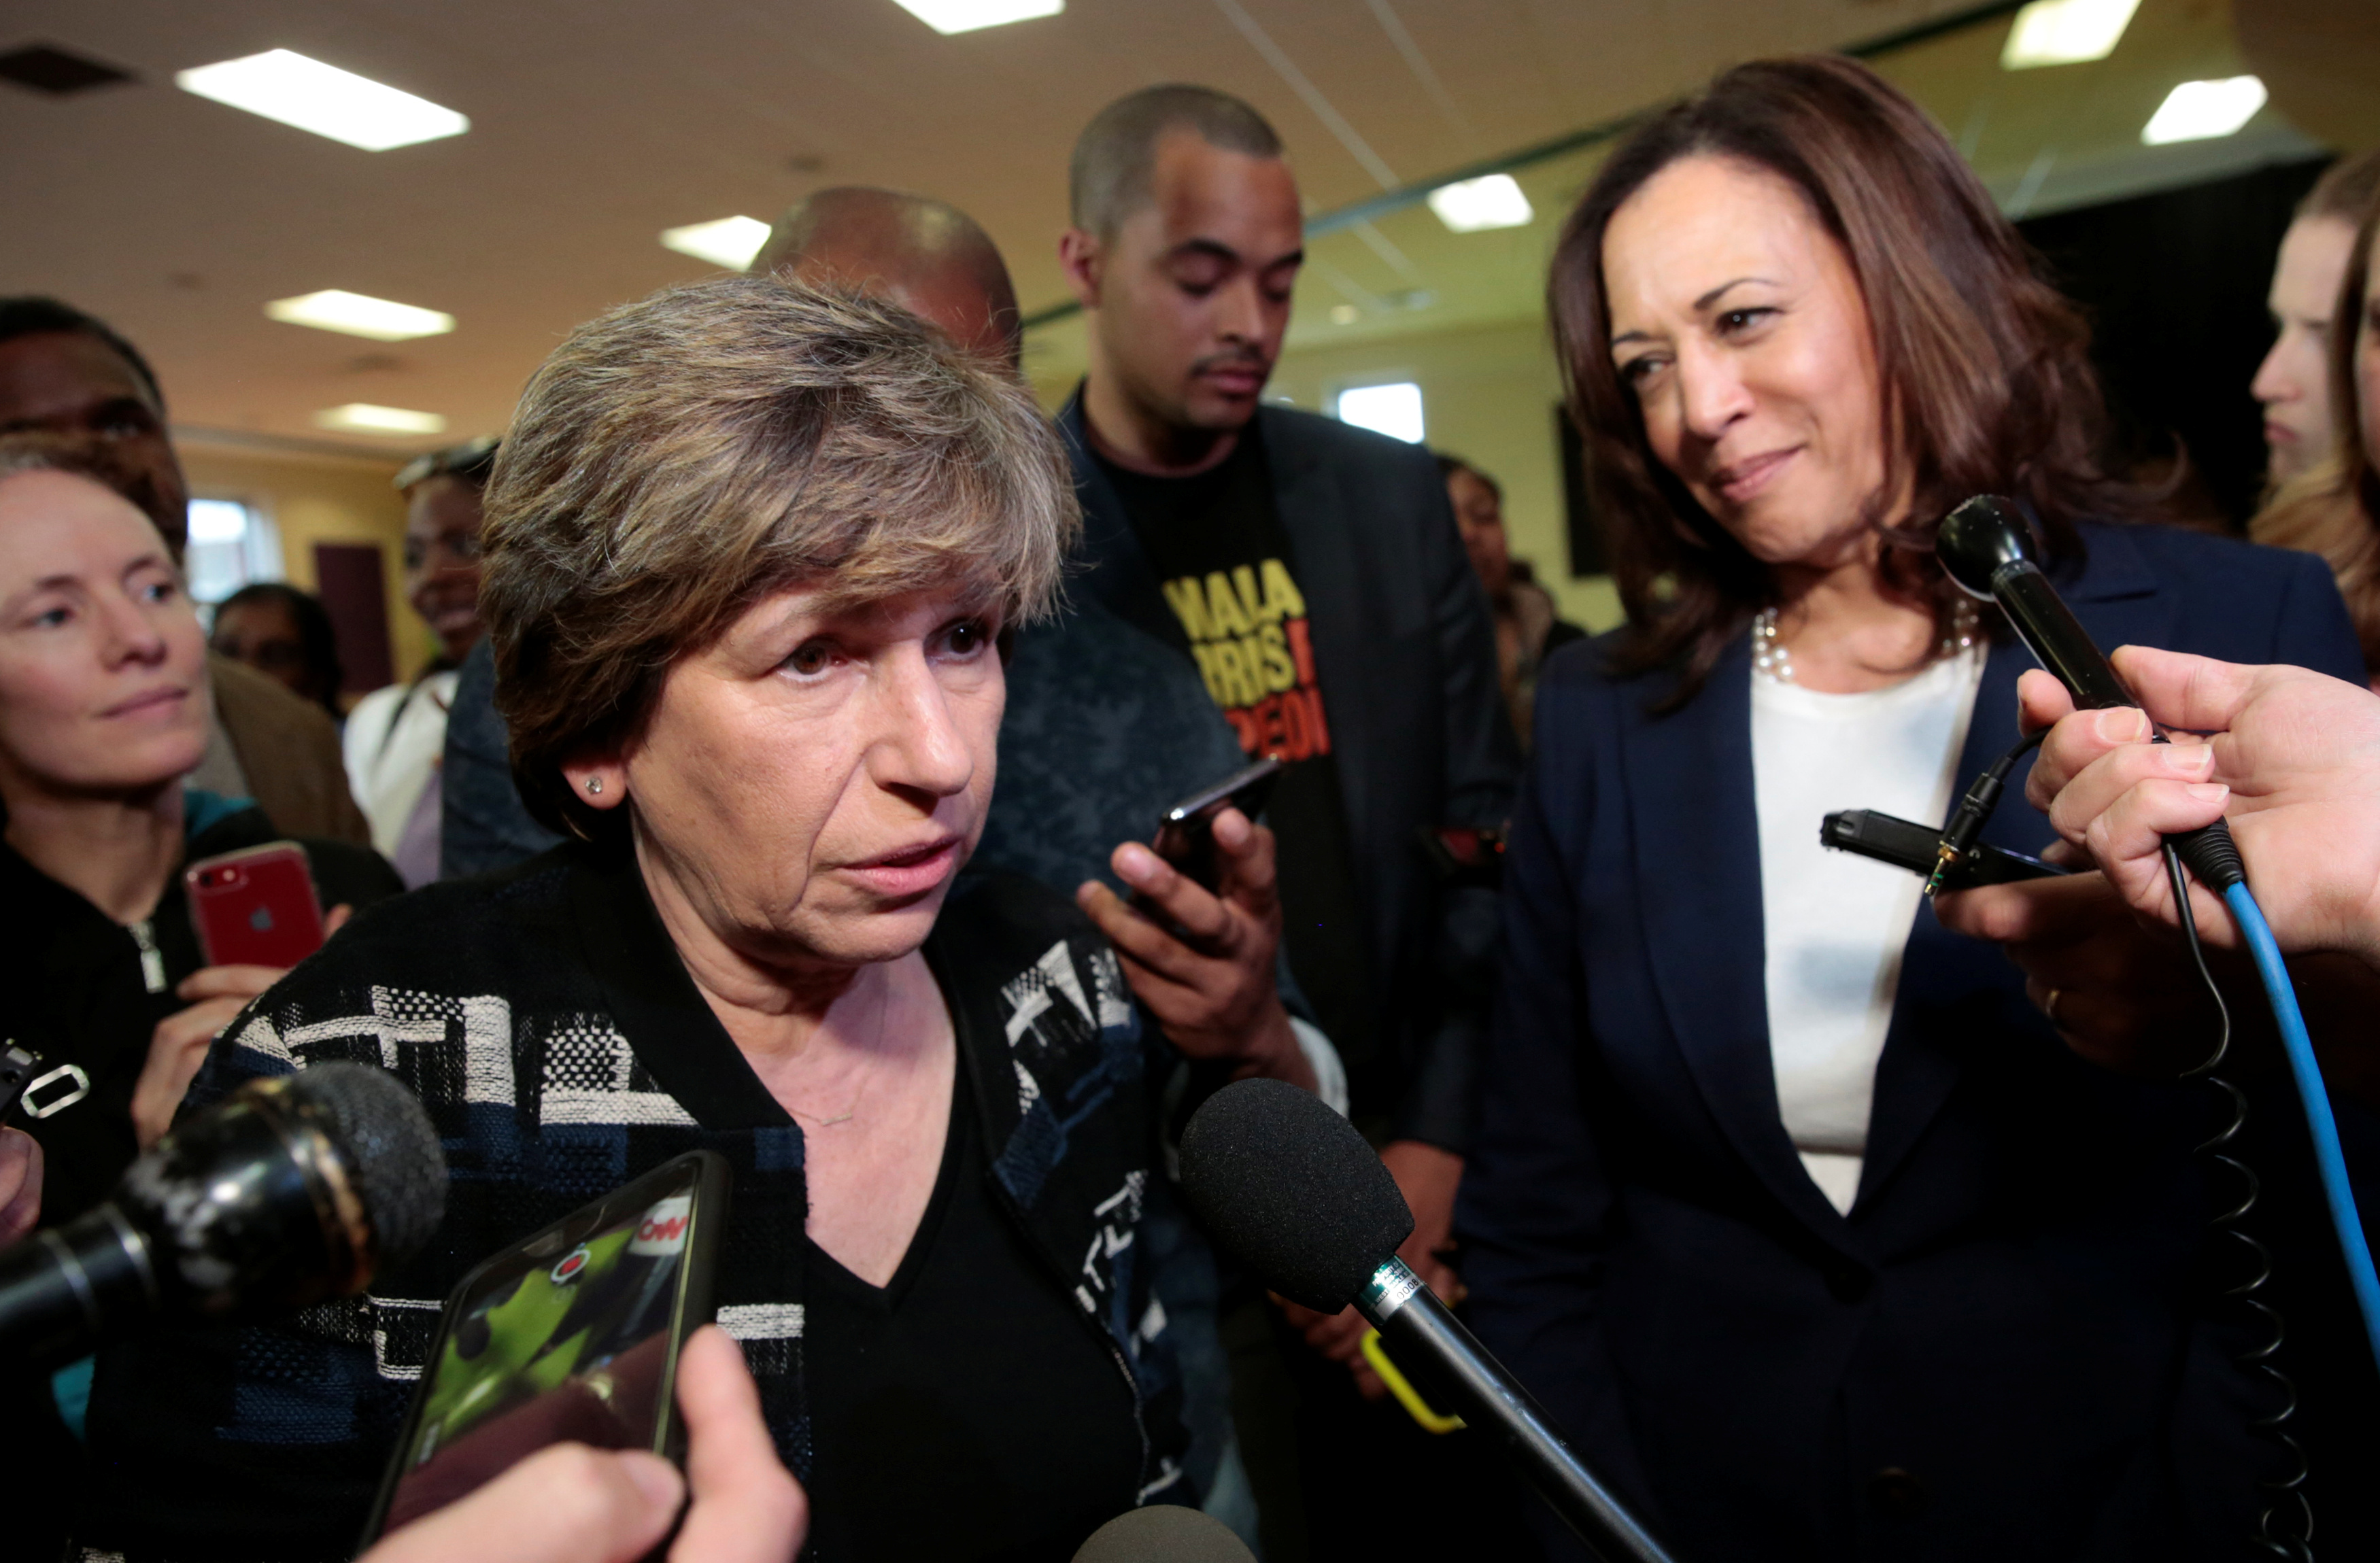 U.S. Senator Kamala Harris (R) listens to American Federation of Teachers president Randi Weingarten speak to the media after speaking to members of the AFT in Detroit, Michigan, U.S. May 6, 2019. REUTERS/Rebecca Cook